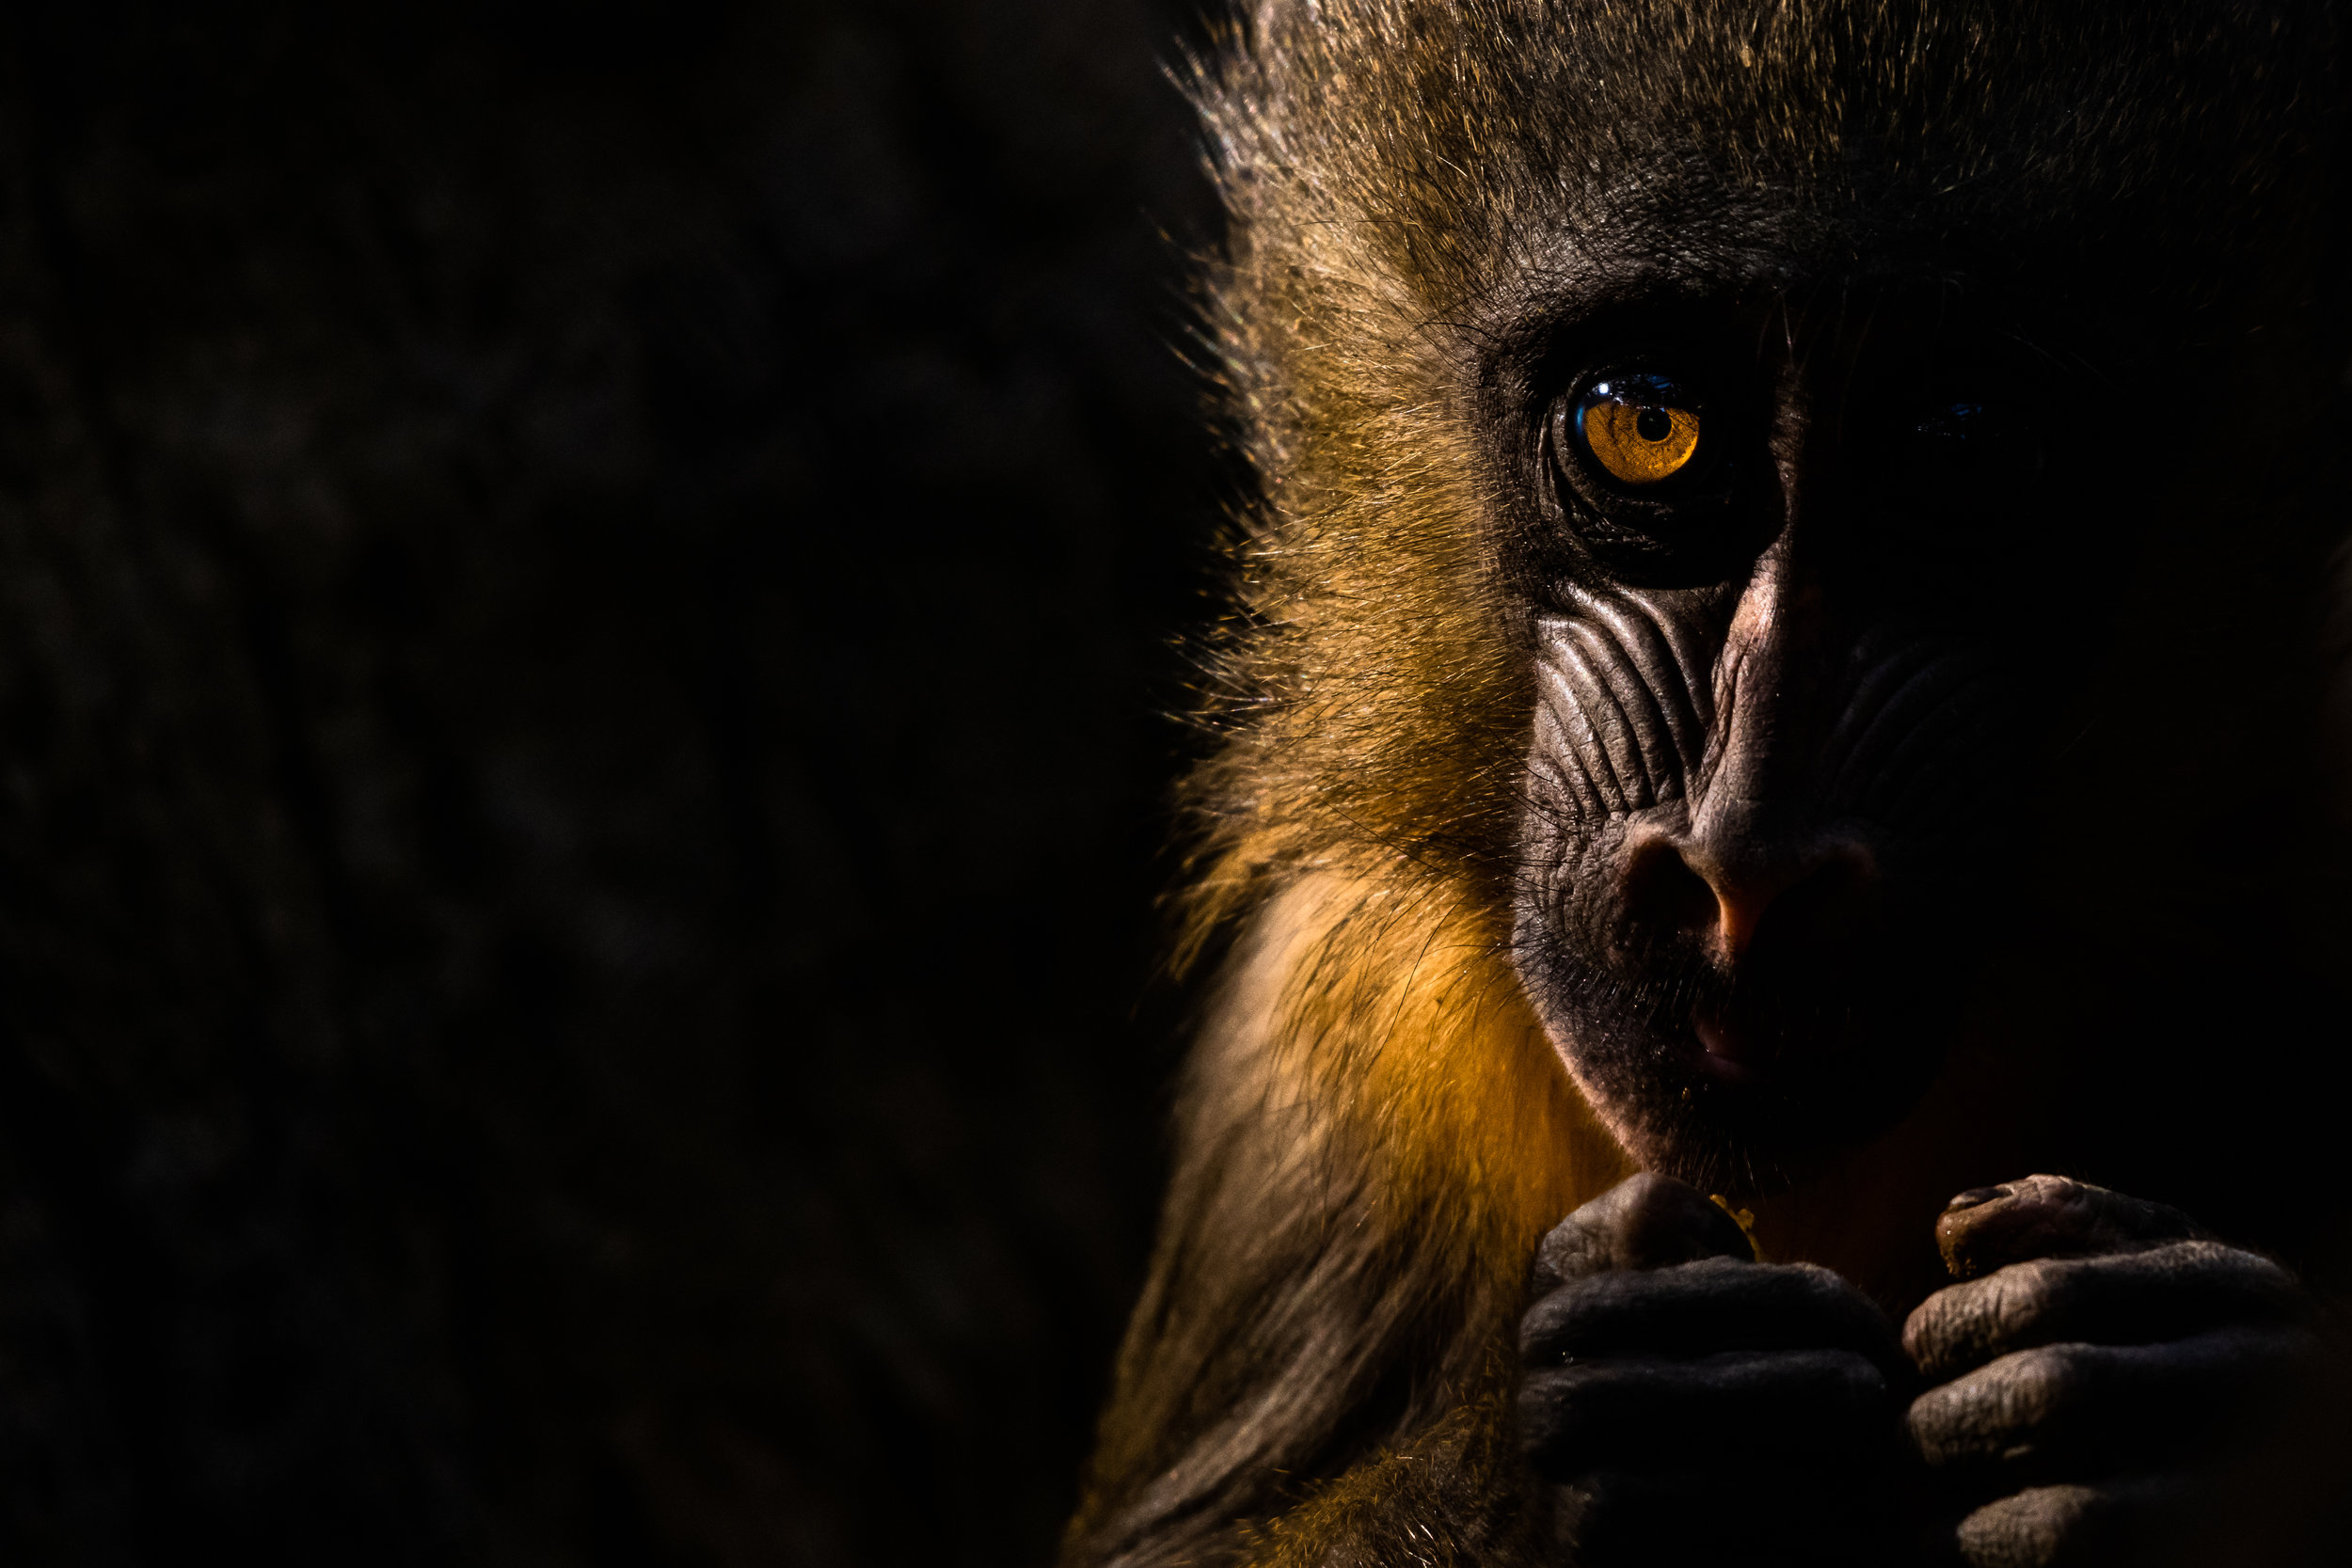 mandrill_01 (1 of 1).jpg